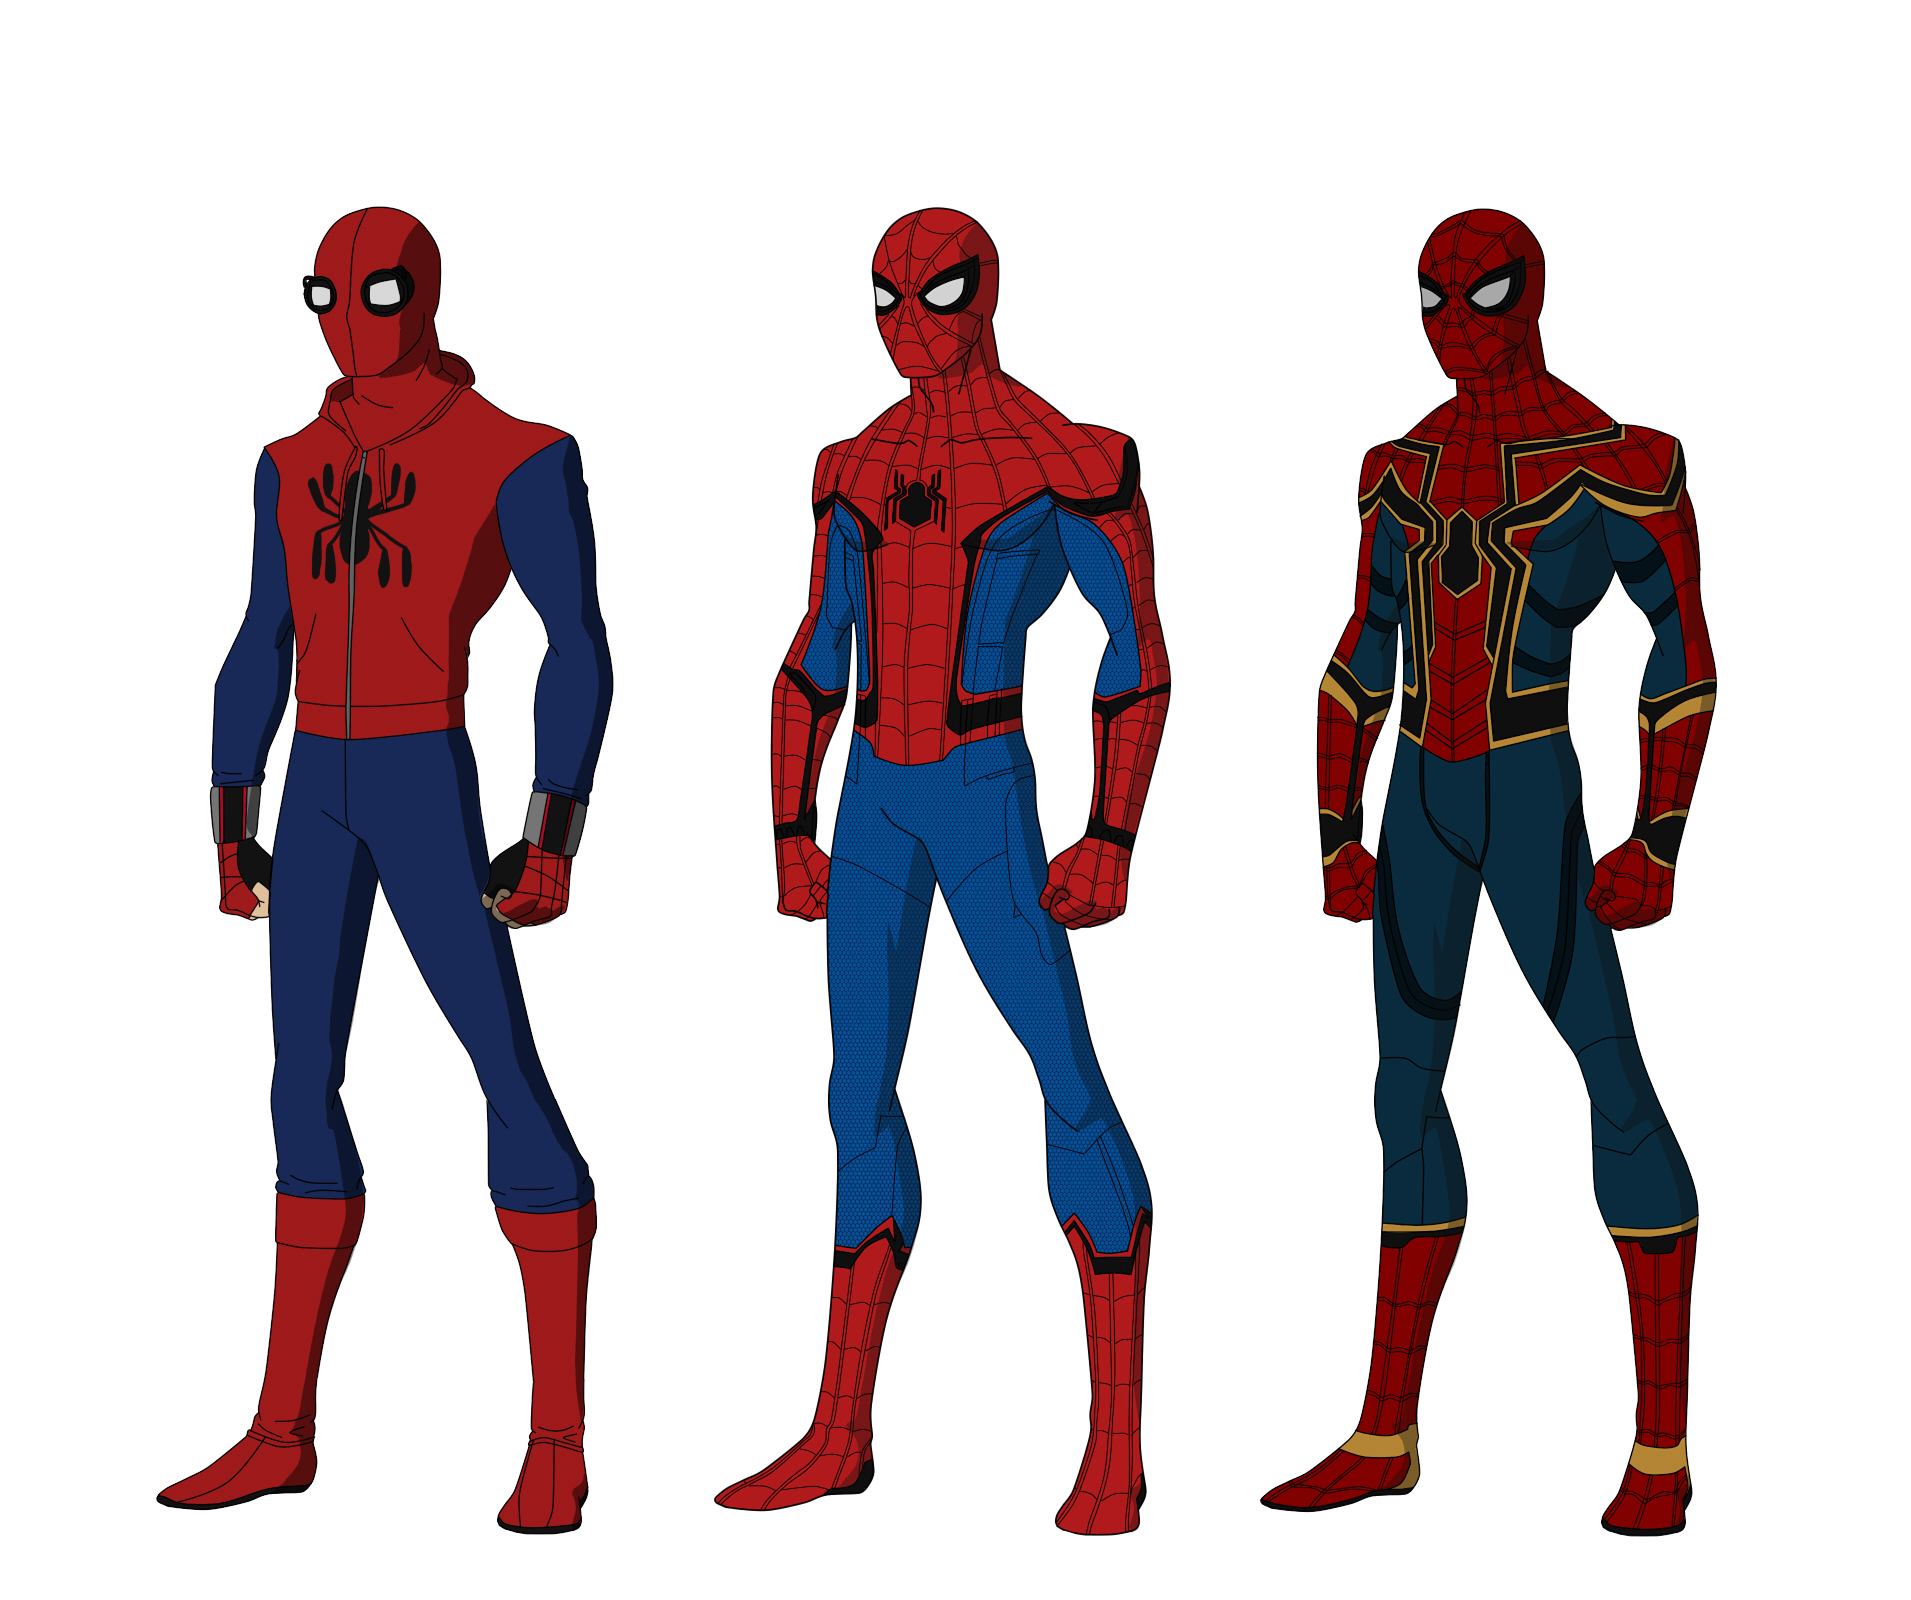 Spider Man Homecoming Suits By Shorterazer On Deviantart